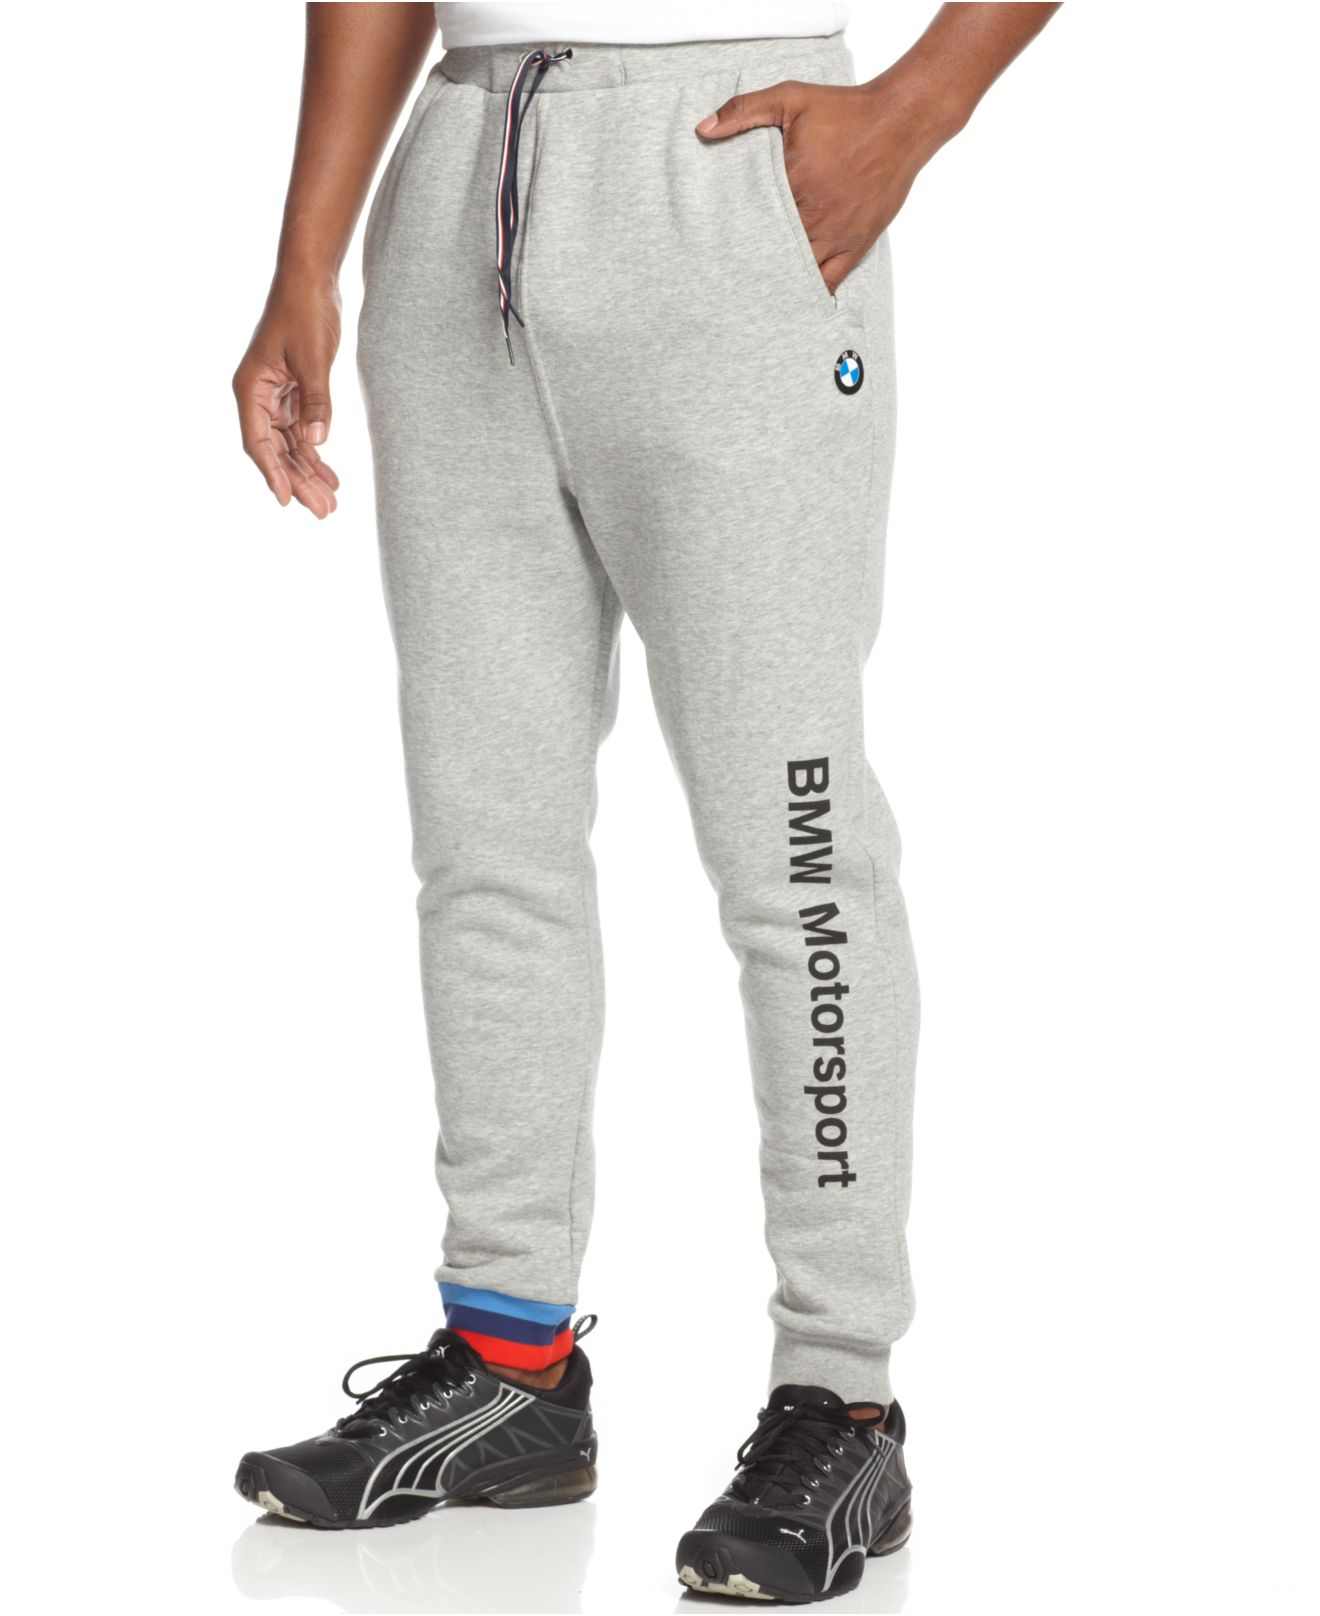 Puma Bmw Fleece Jogger Pants In Gray For Men Lyst